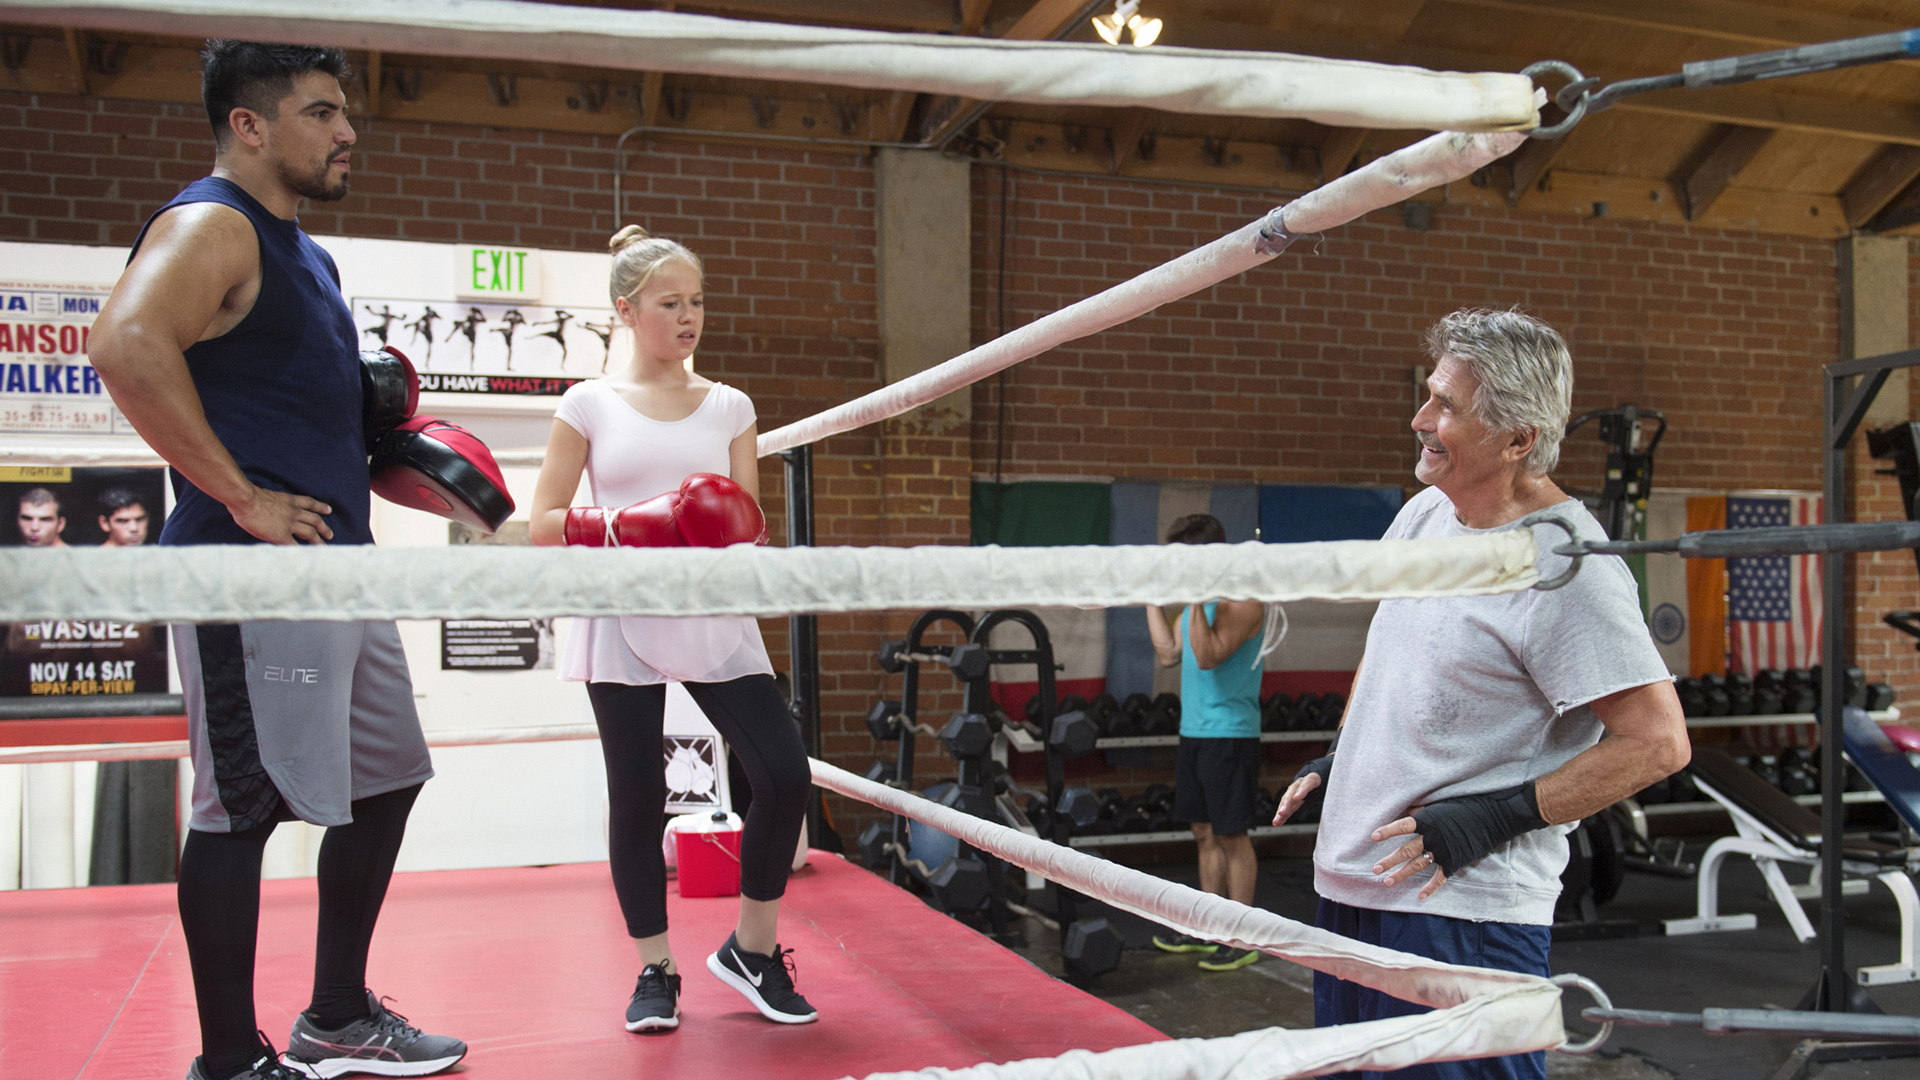 Troy (Victor Ortiz) agrees to give Samantha some pointers.